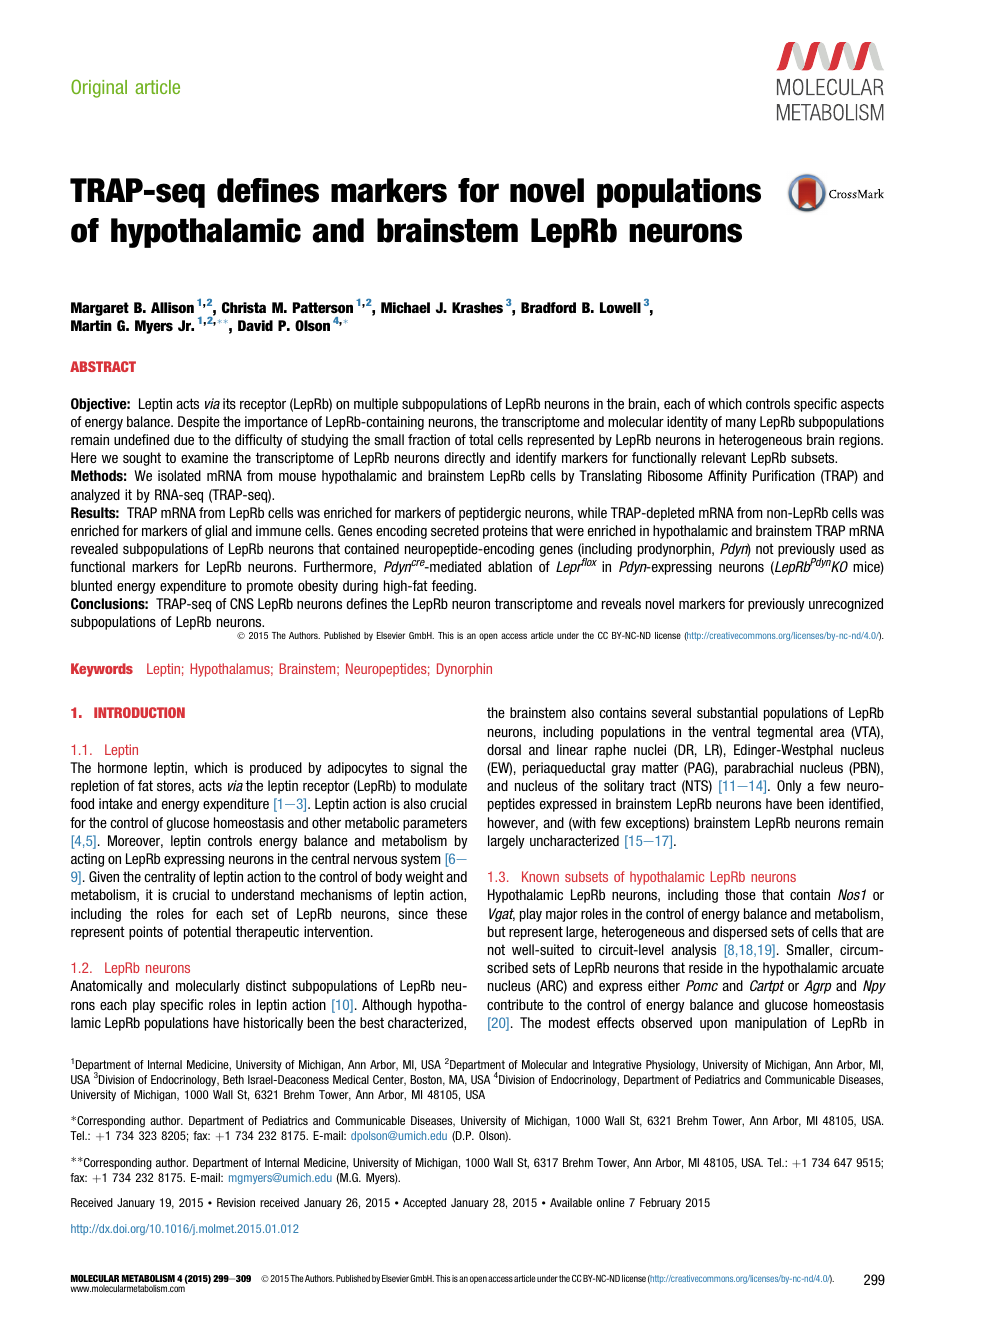 TRAP-seq defines markers for novel populations of